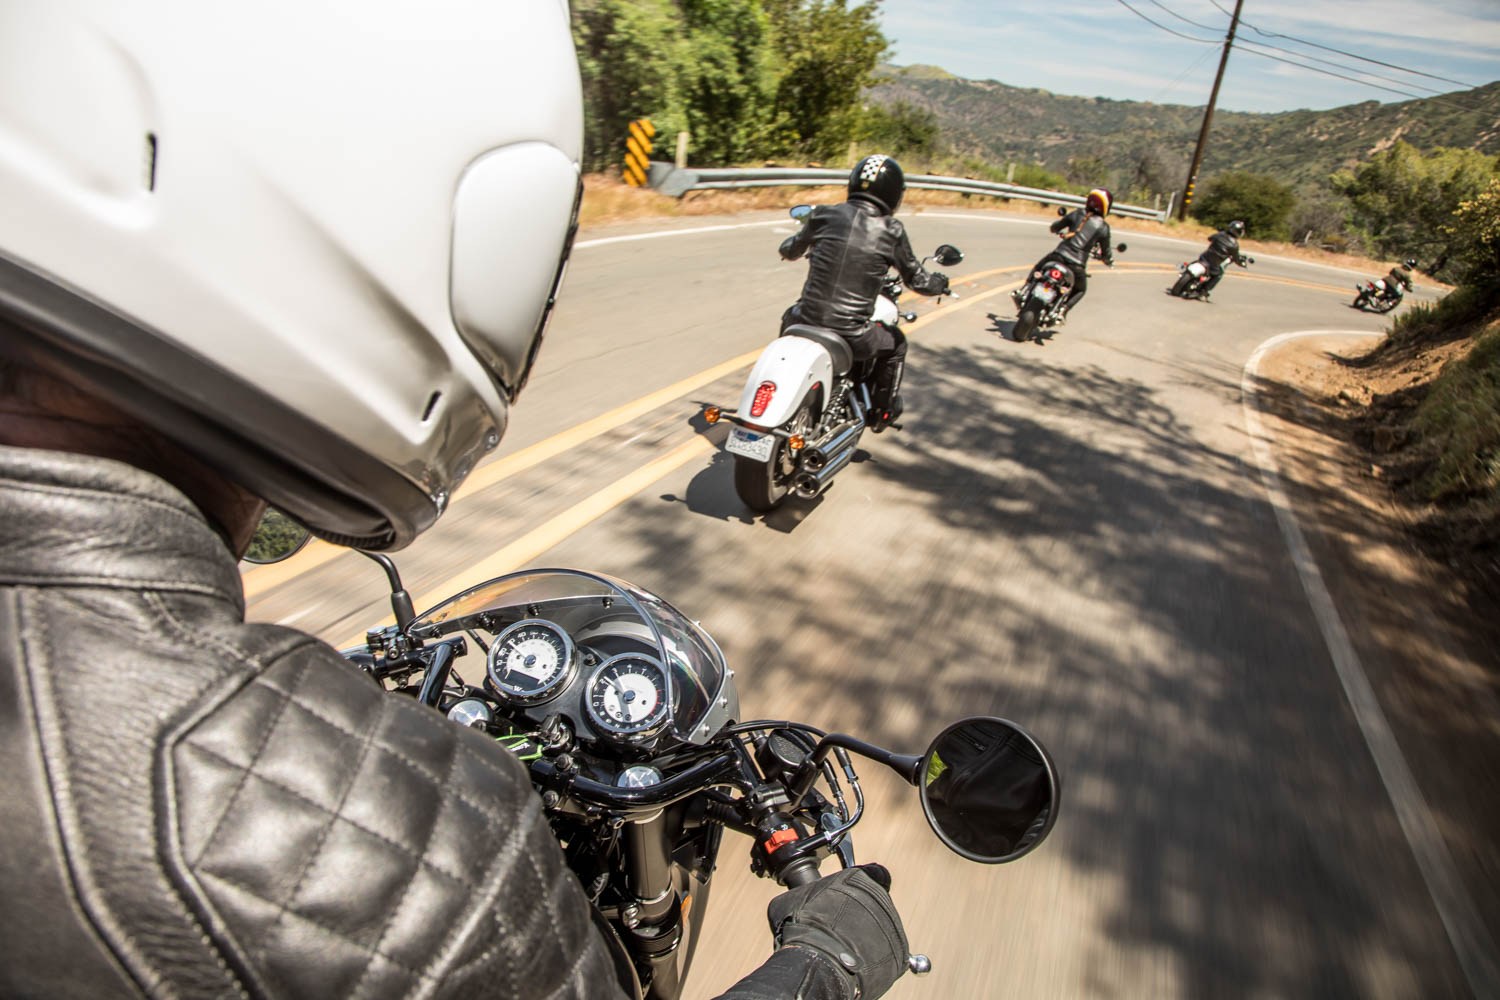 Leaning into the turn on a glorious California two-lane is one of the great pleasures in motorcycling. From left to right, the Kawasaki W800 Cafe, the Indian Scout Sixty, the Triumph Street Twin, the Harley-Davidson Sportster Iron 1200, and the Royal Enfield Continental GT.